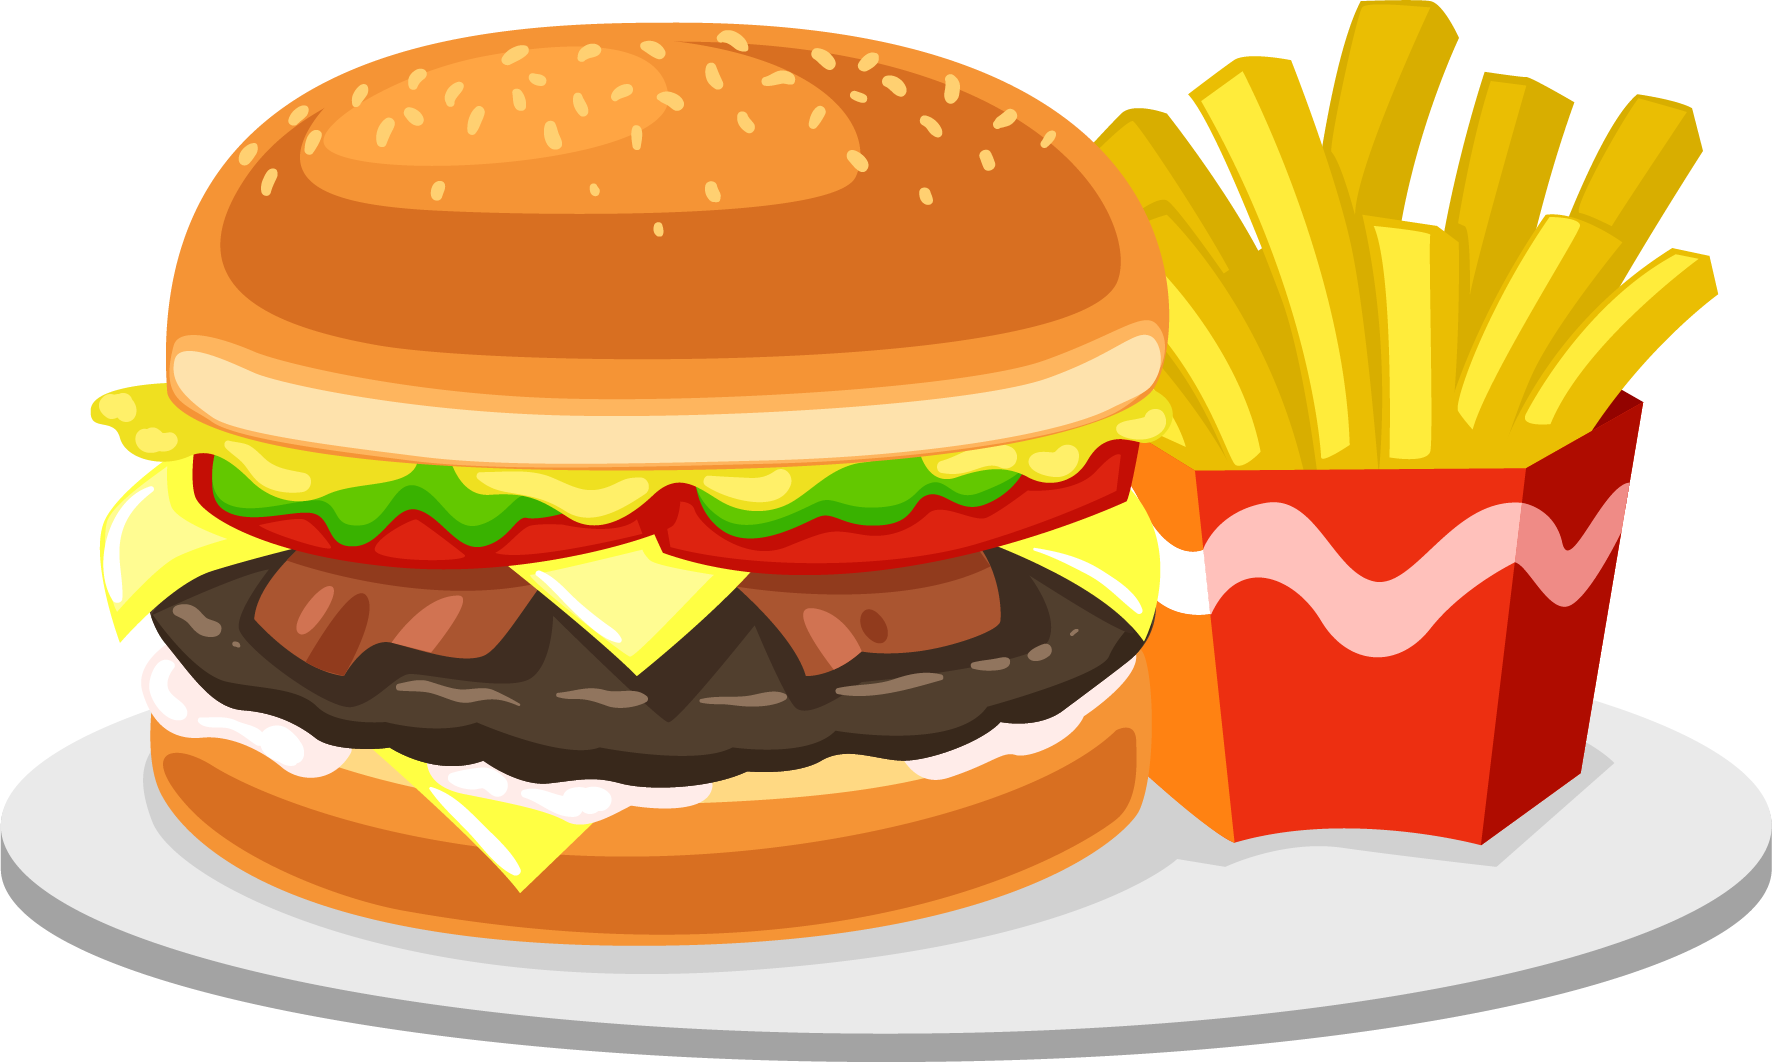 Cartoon food png. Junk transparent quality images